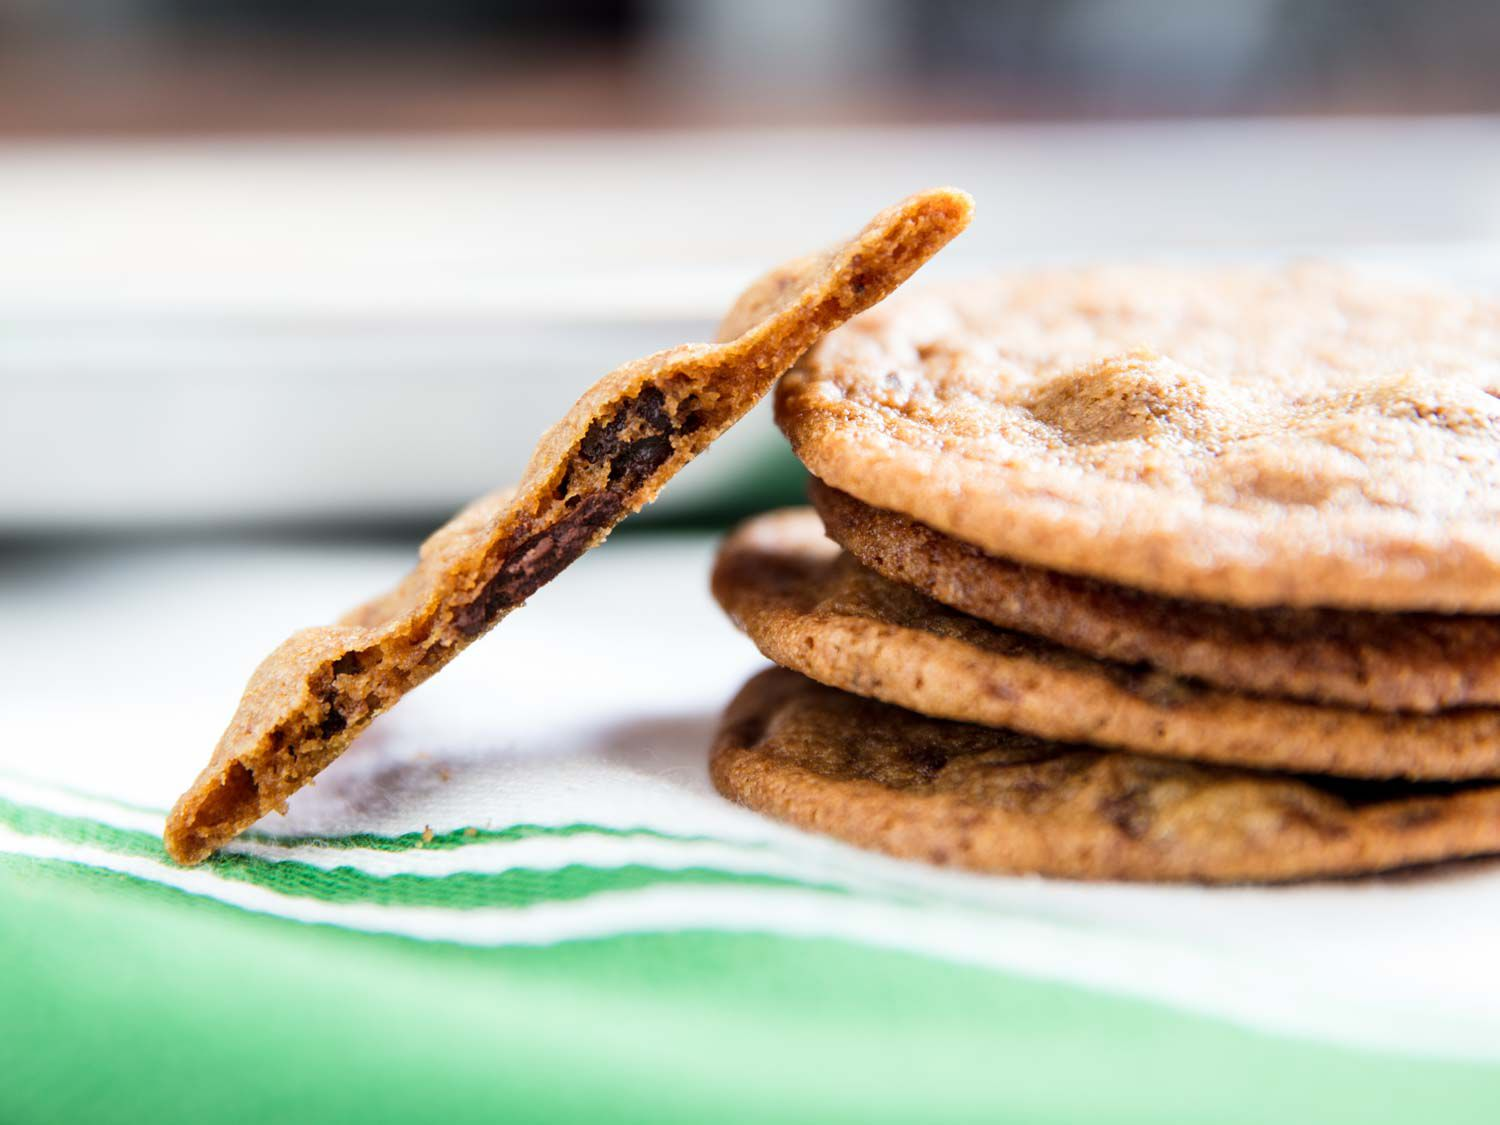 20190129-tates-style-chocolate-chip-cookies-vicky-wasik-20